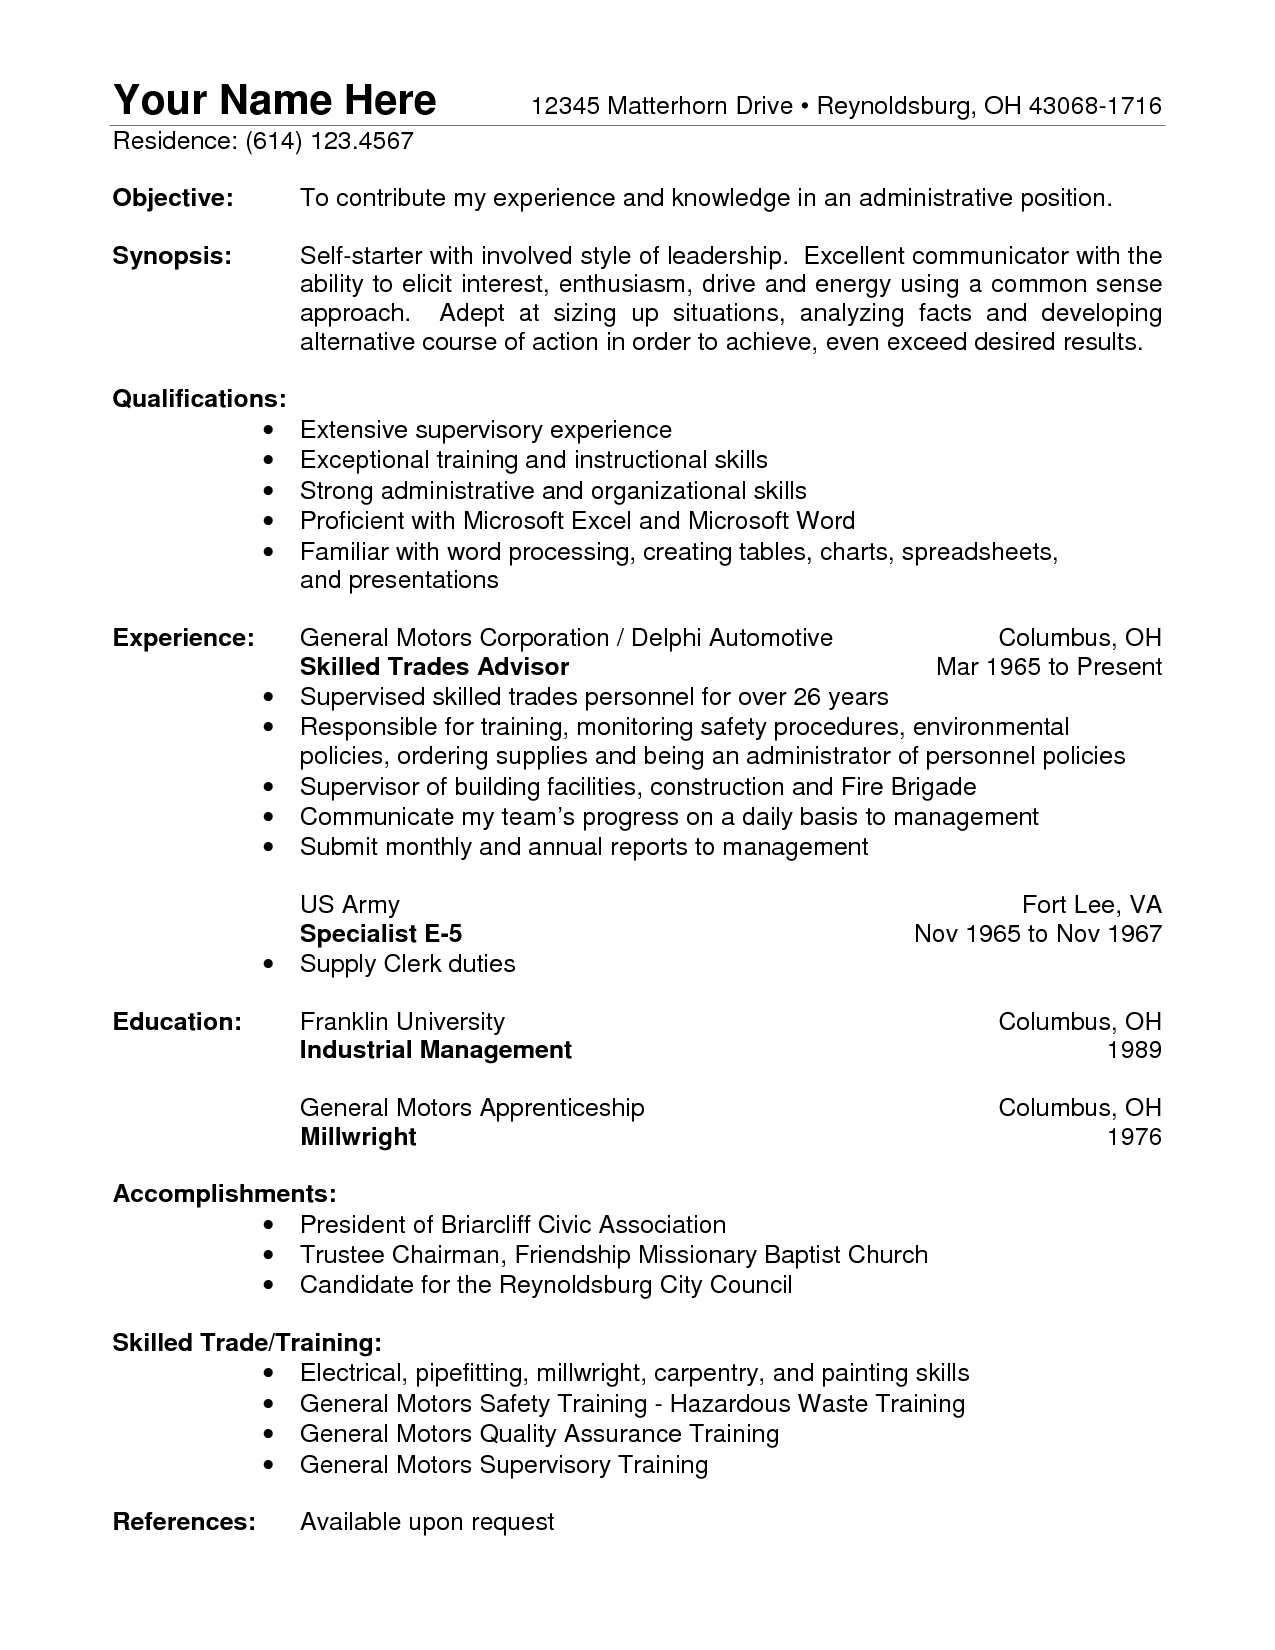 Supervisor Job Description For Resume 7 Resume Basic Computer Skills Examples  Sample Resumes  Sample